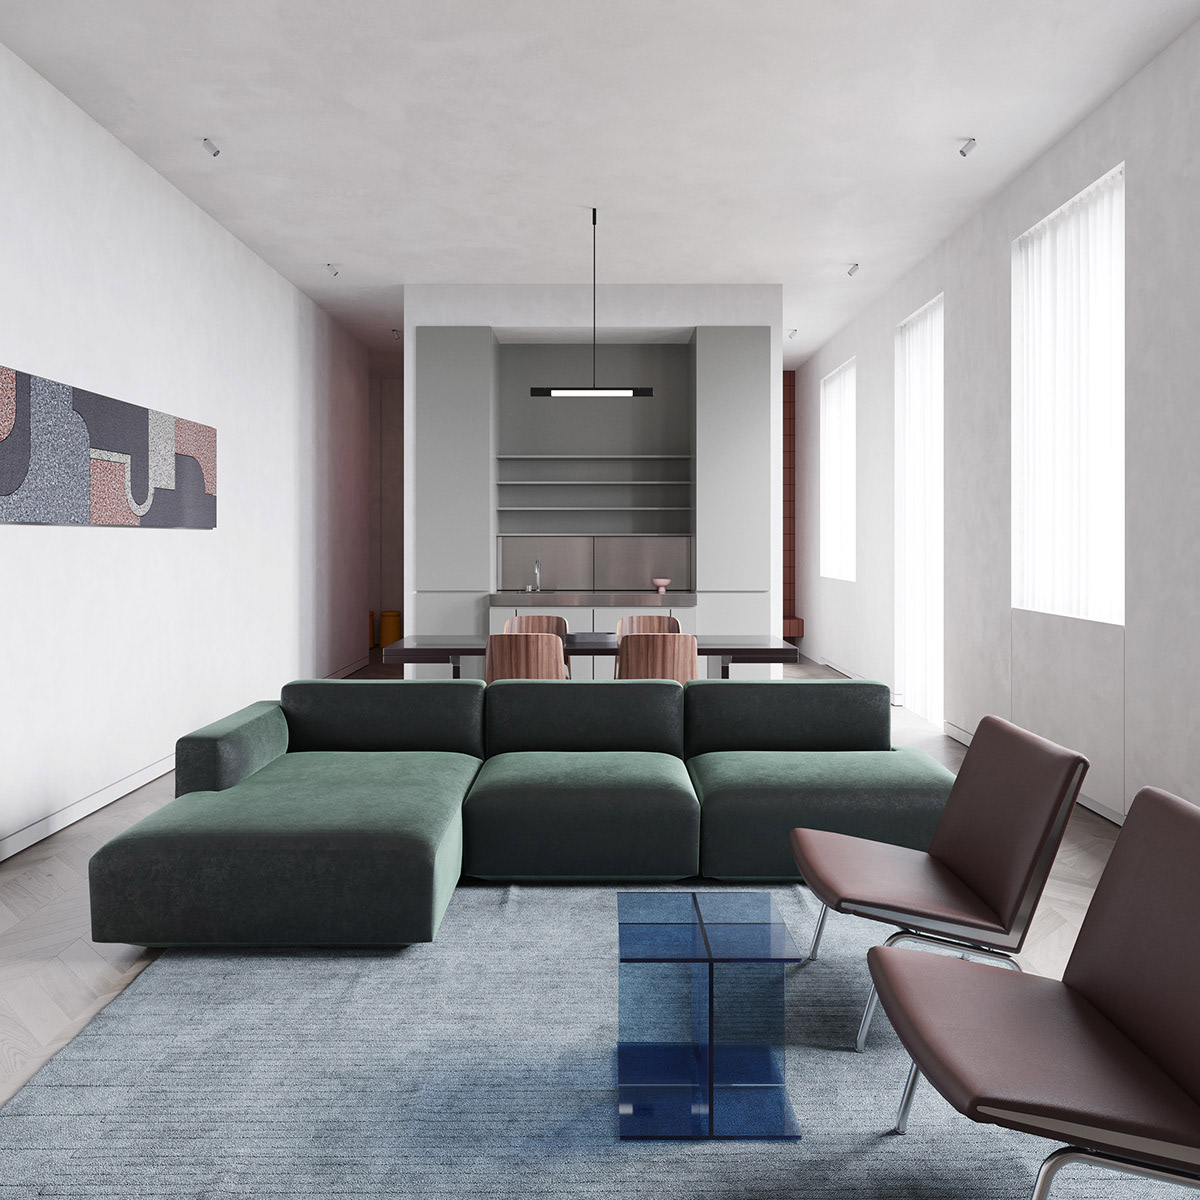 Apartment Living For The Modern Minimalist: Modern Minimalist Apartment Designs Under 75 Square Meters